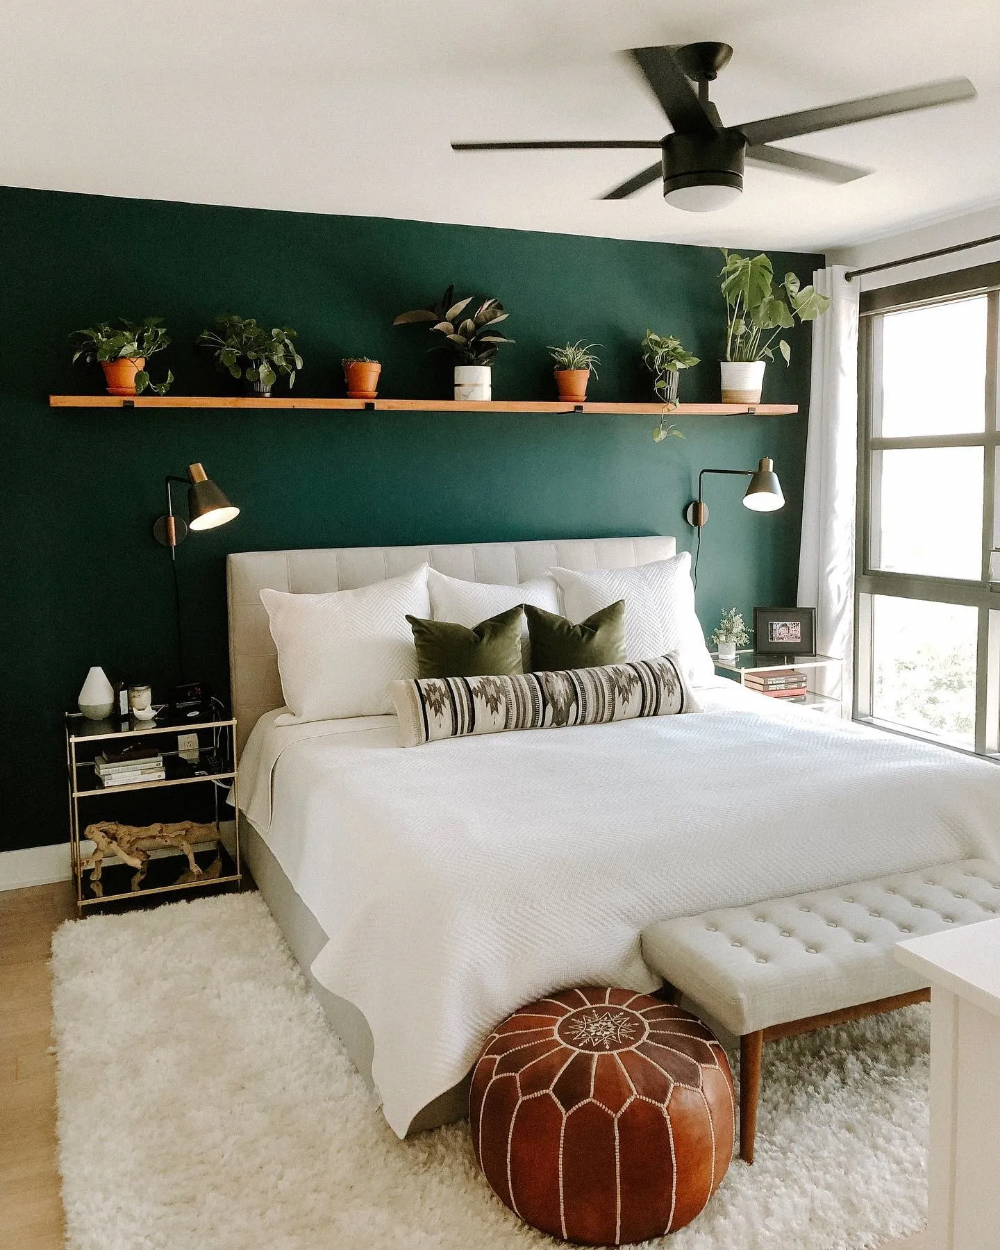 The Best Colors For Decorating A Bedroom In 2020 Green Bedroom Walls Bedroom Trends Bedroom Inspirations